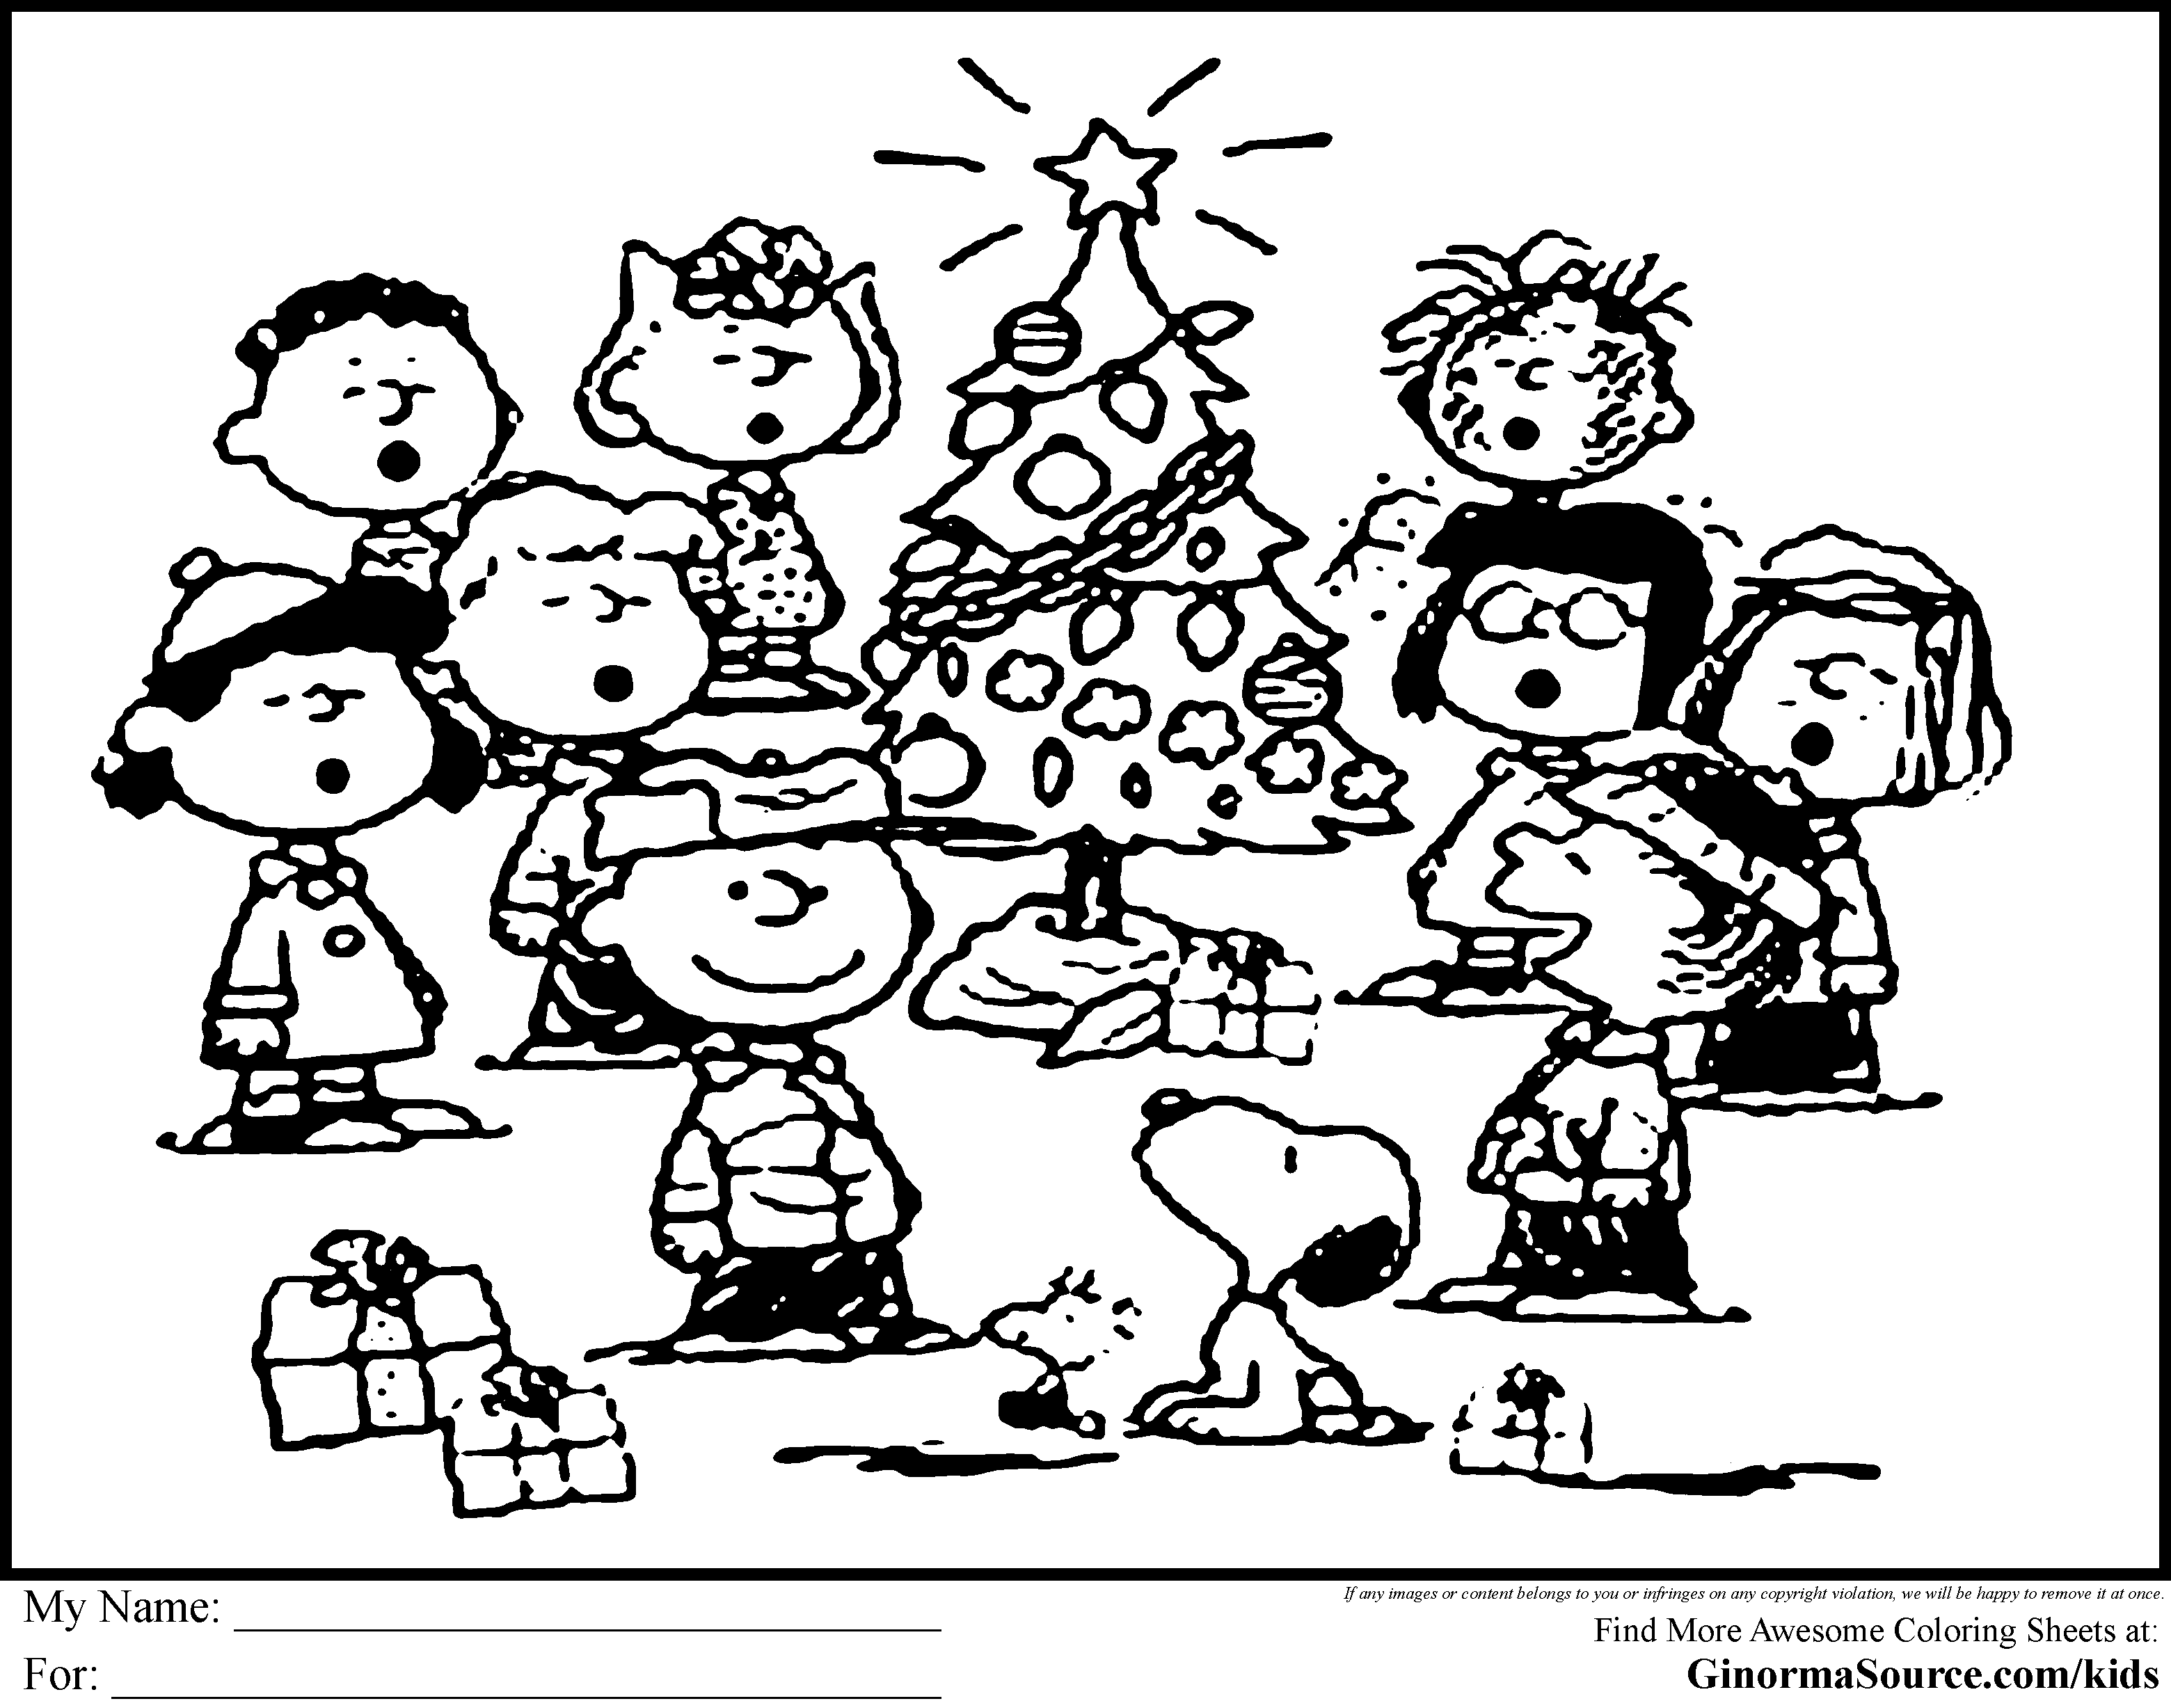 Coloring pictures charlie brown characters - Charlie Brown Snoopy Christmas Coloring Pages Coloring Pages For